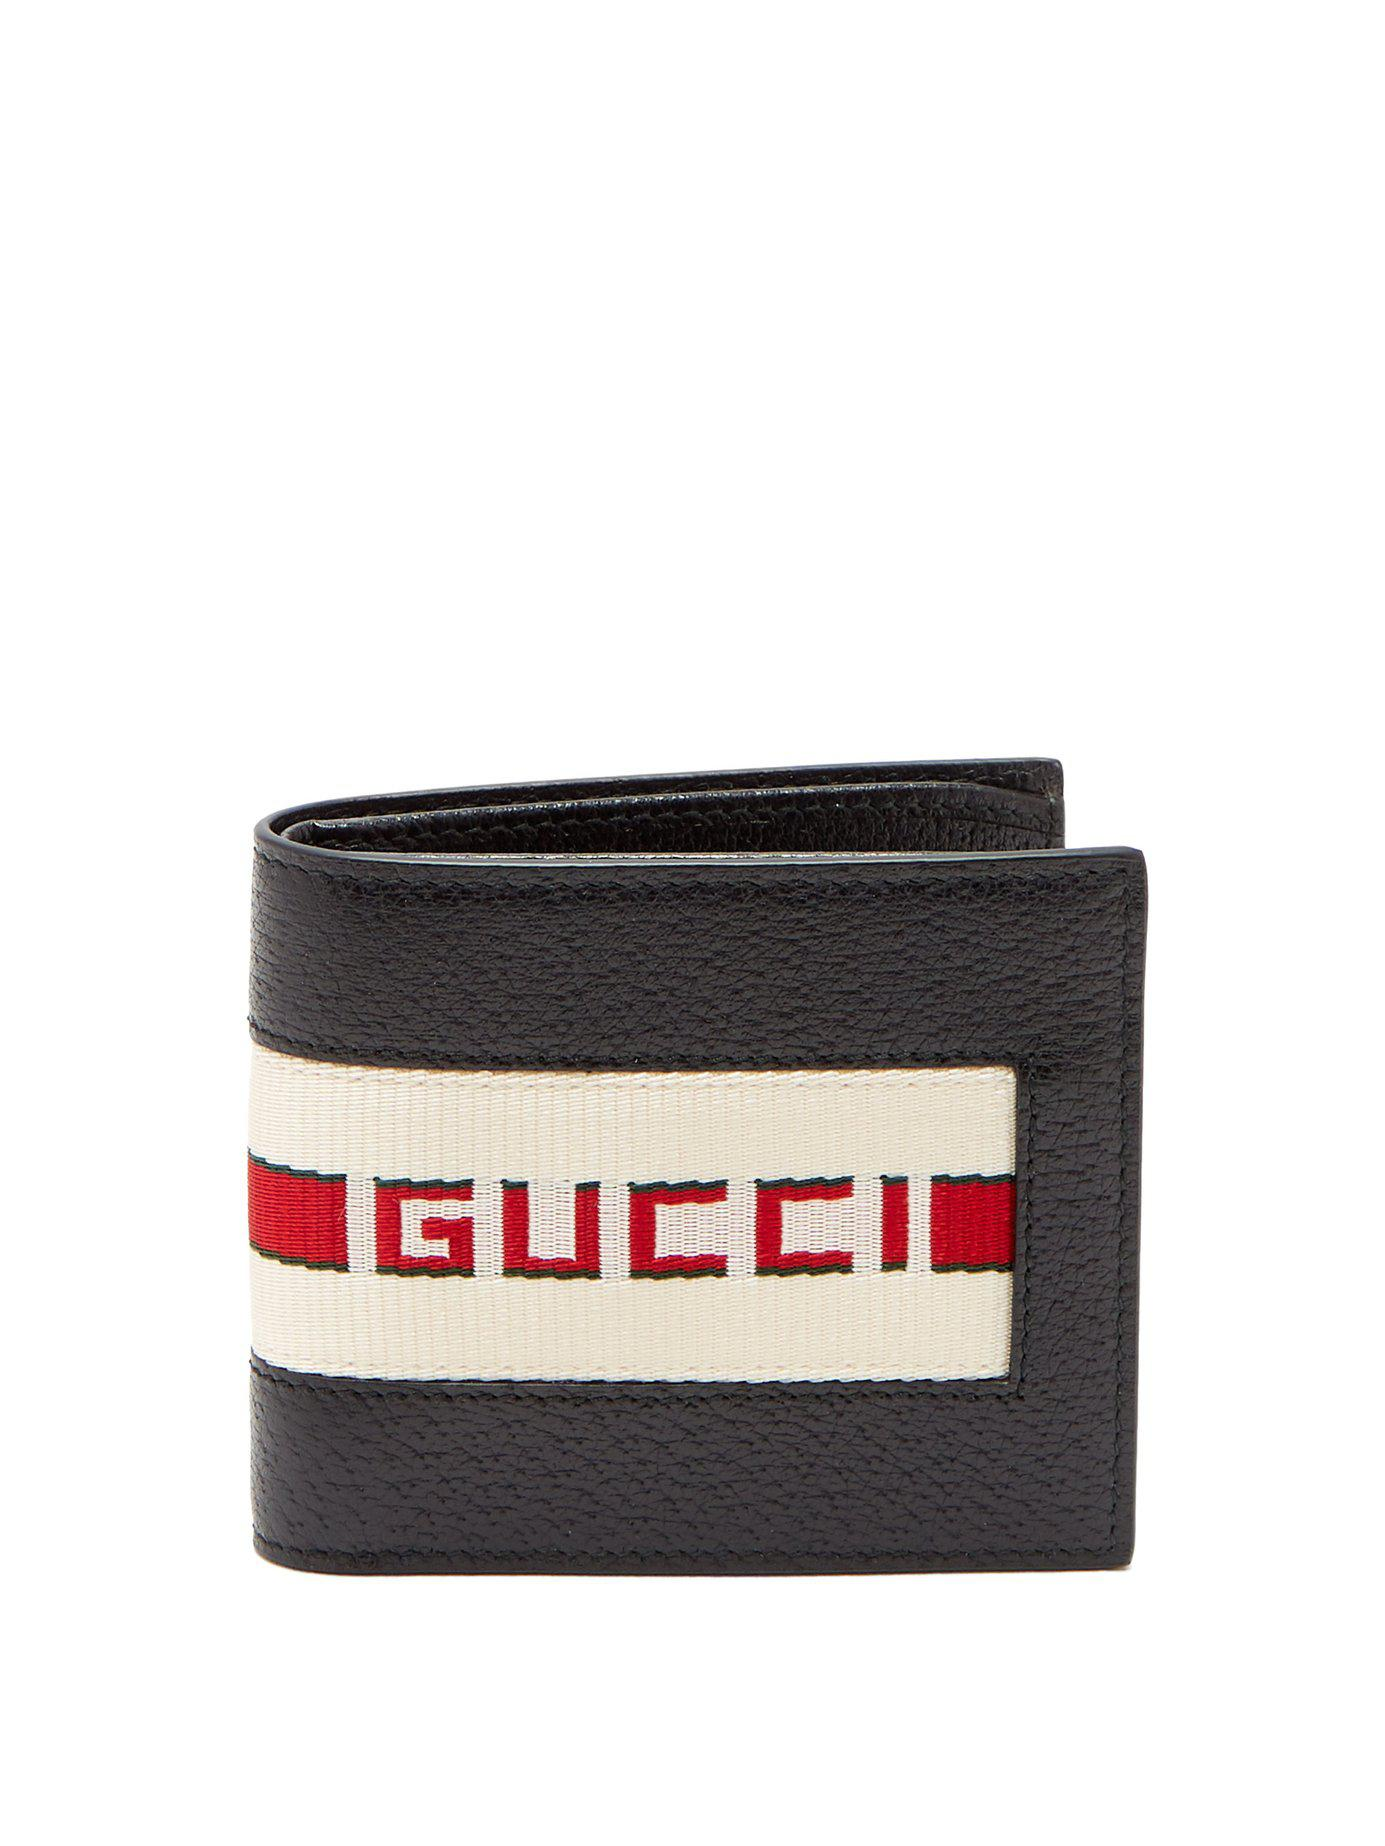 196886d9e68b Gucci Bi Fold Wallet With Retro Logo in Black for Men - Save 23% - Lyst